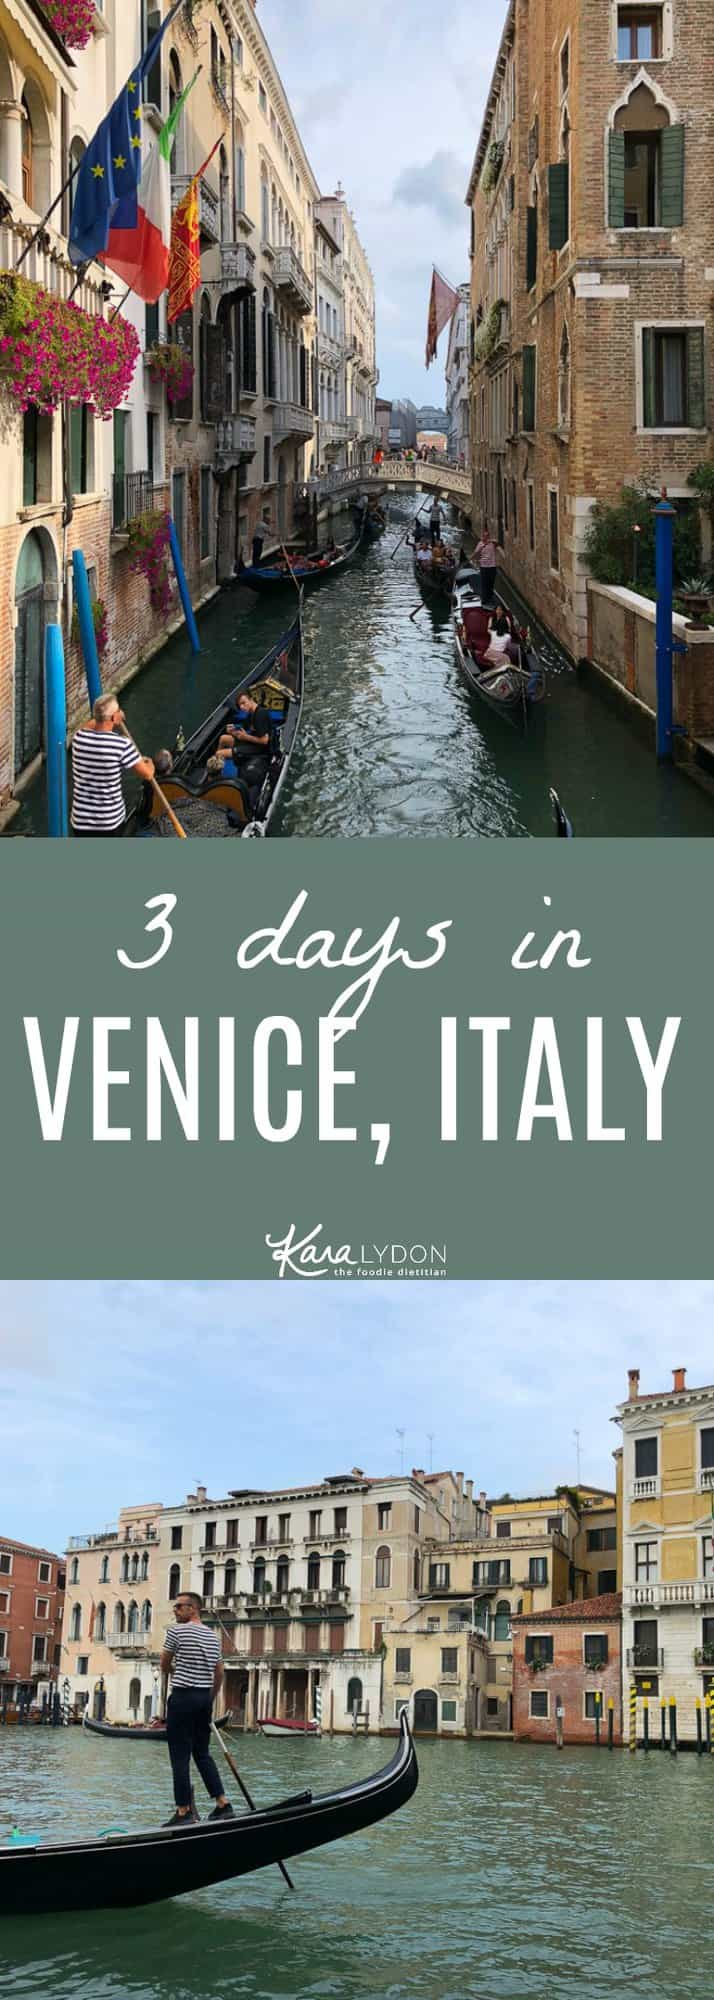 Recapping our 3 days in Venice, Italy. Where to stay, eat and visit! #travel #venice #italy